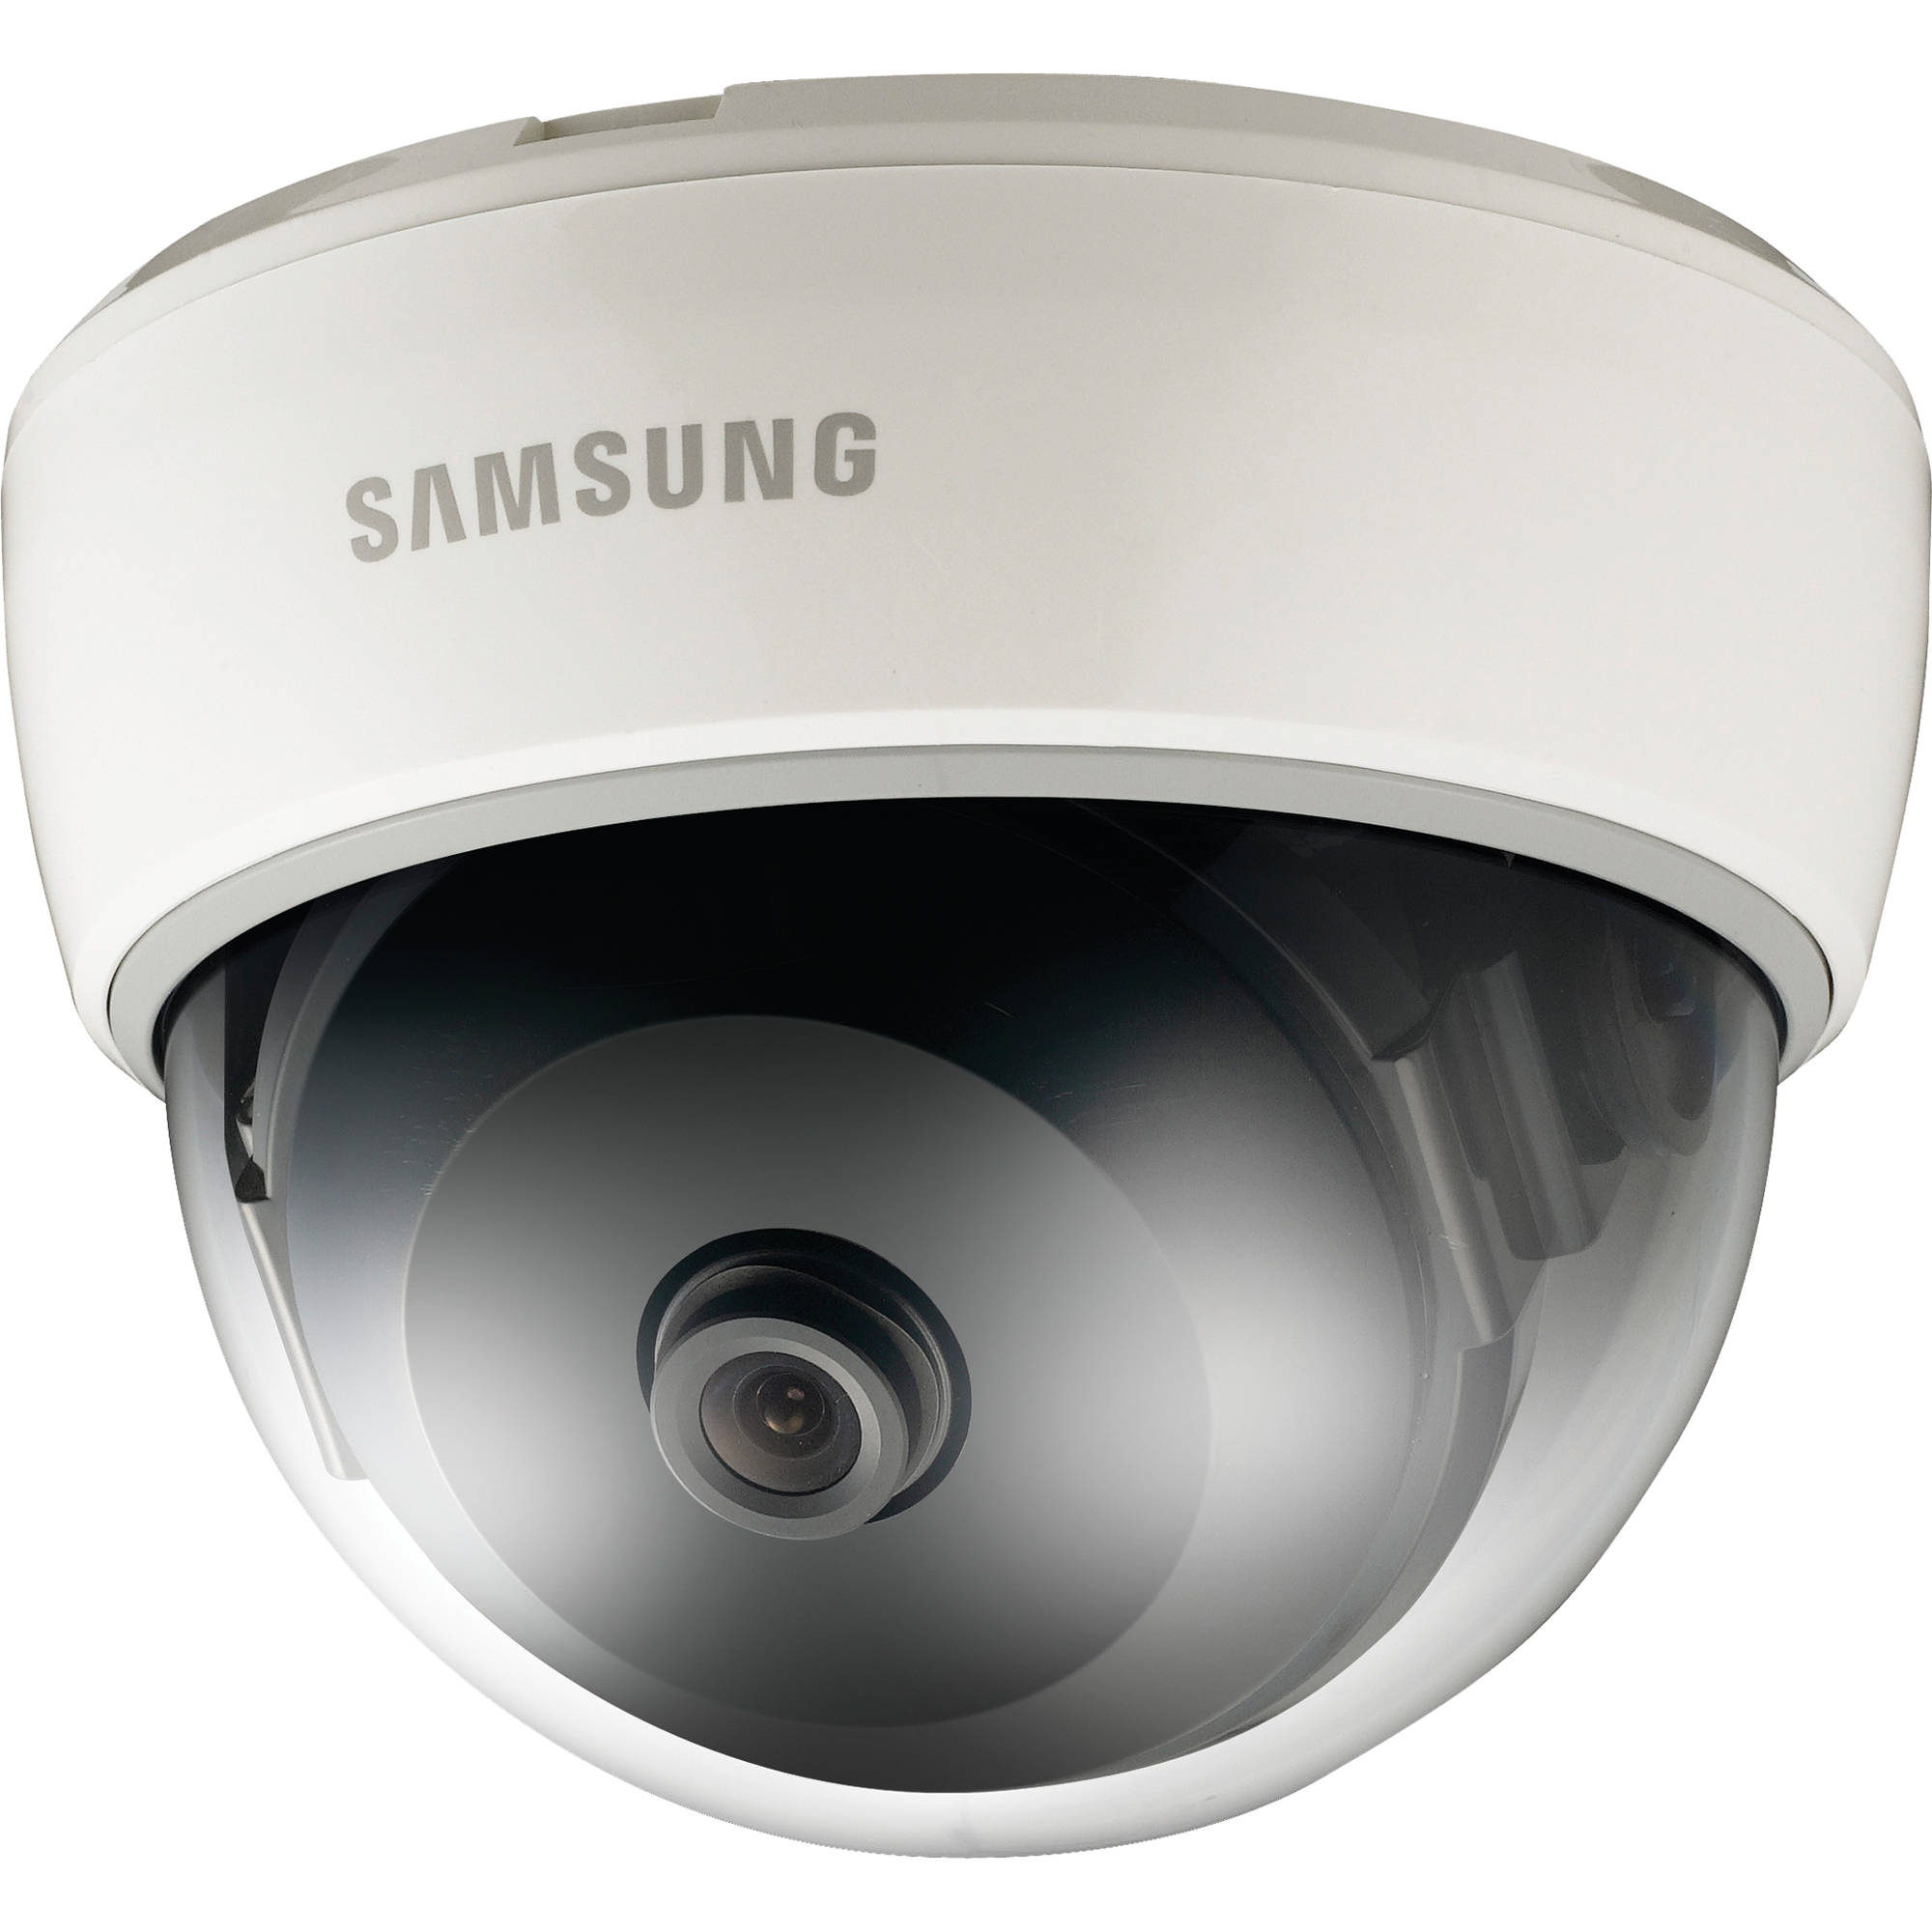 Samsung SND-1011 Network Camera Drivers for Windows Download